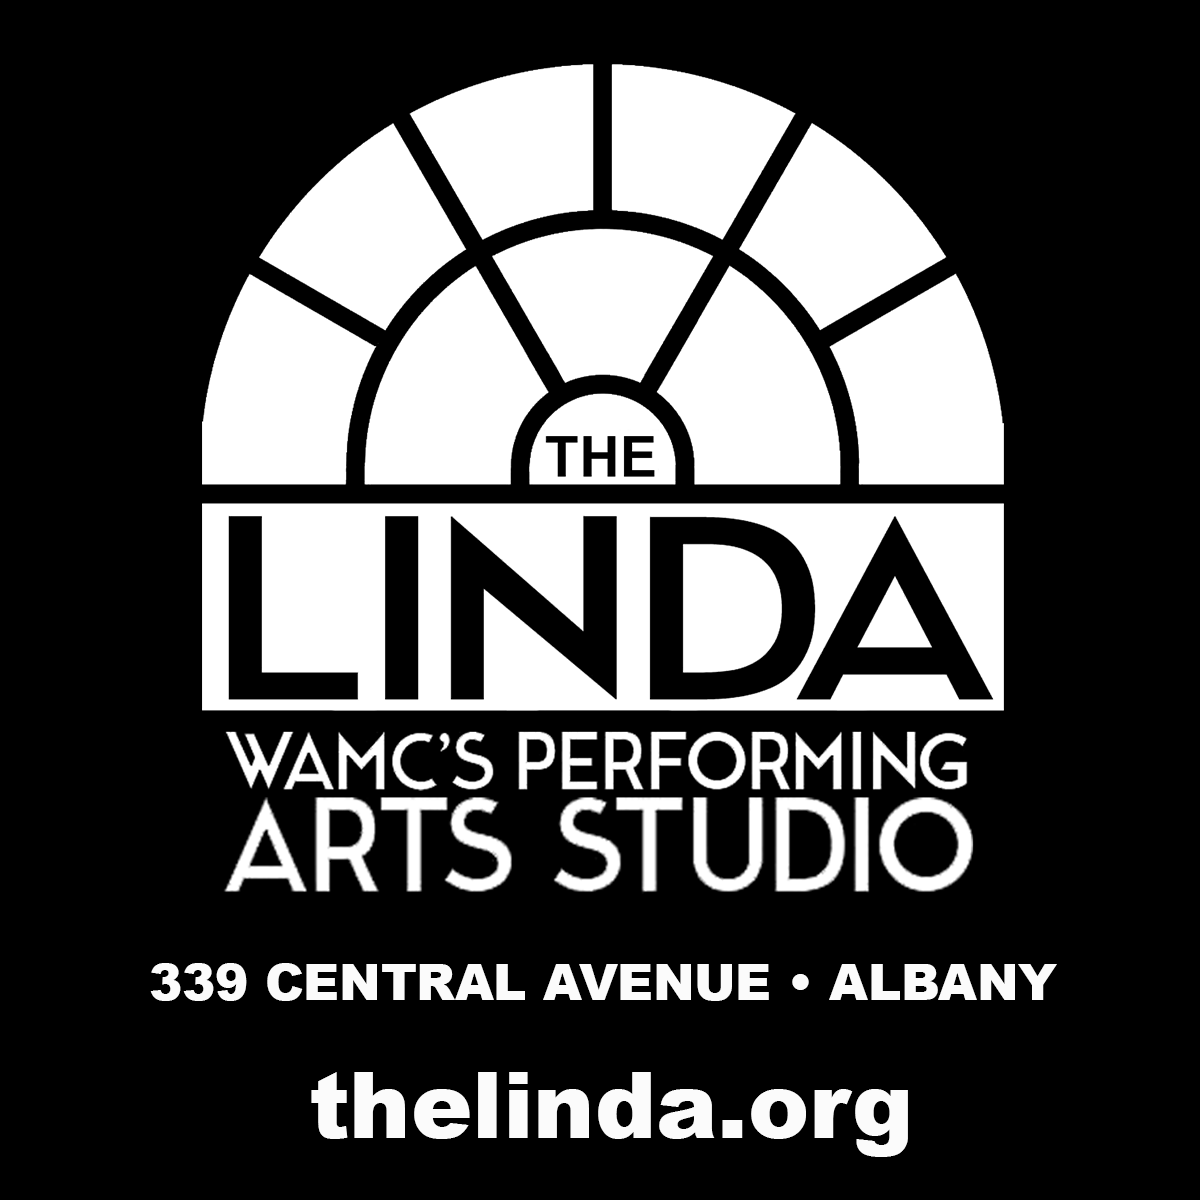 The Linda Ad Series